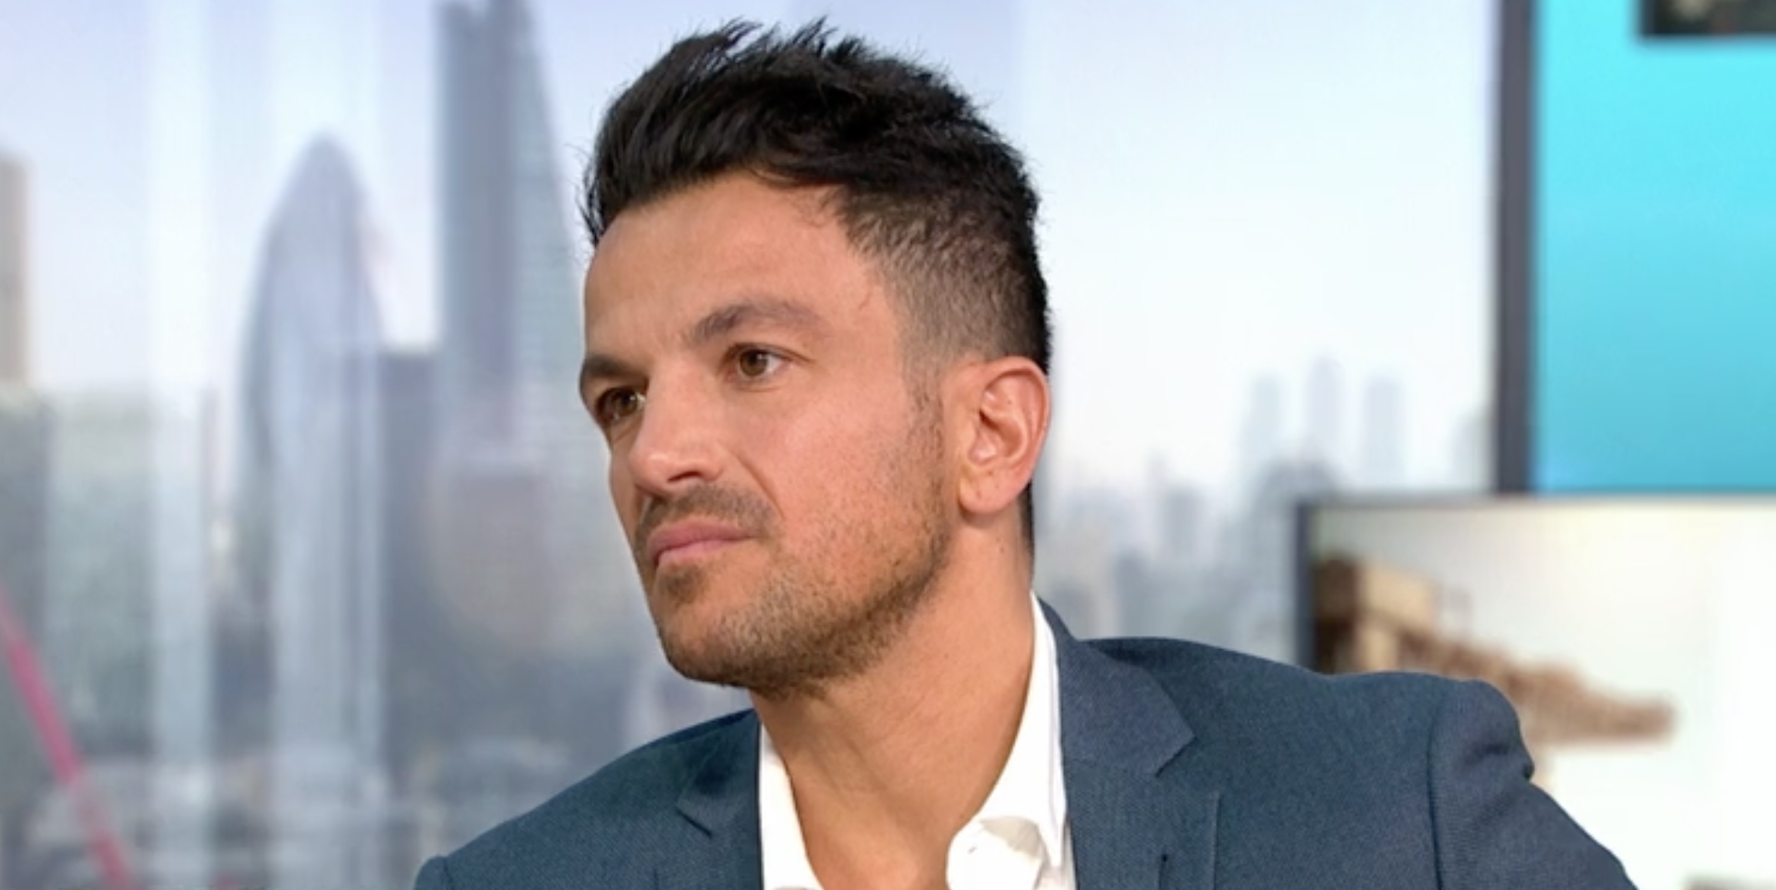 Peter Andre shuts down Piers Morgan on GMB over awkward Katie Price questions